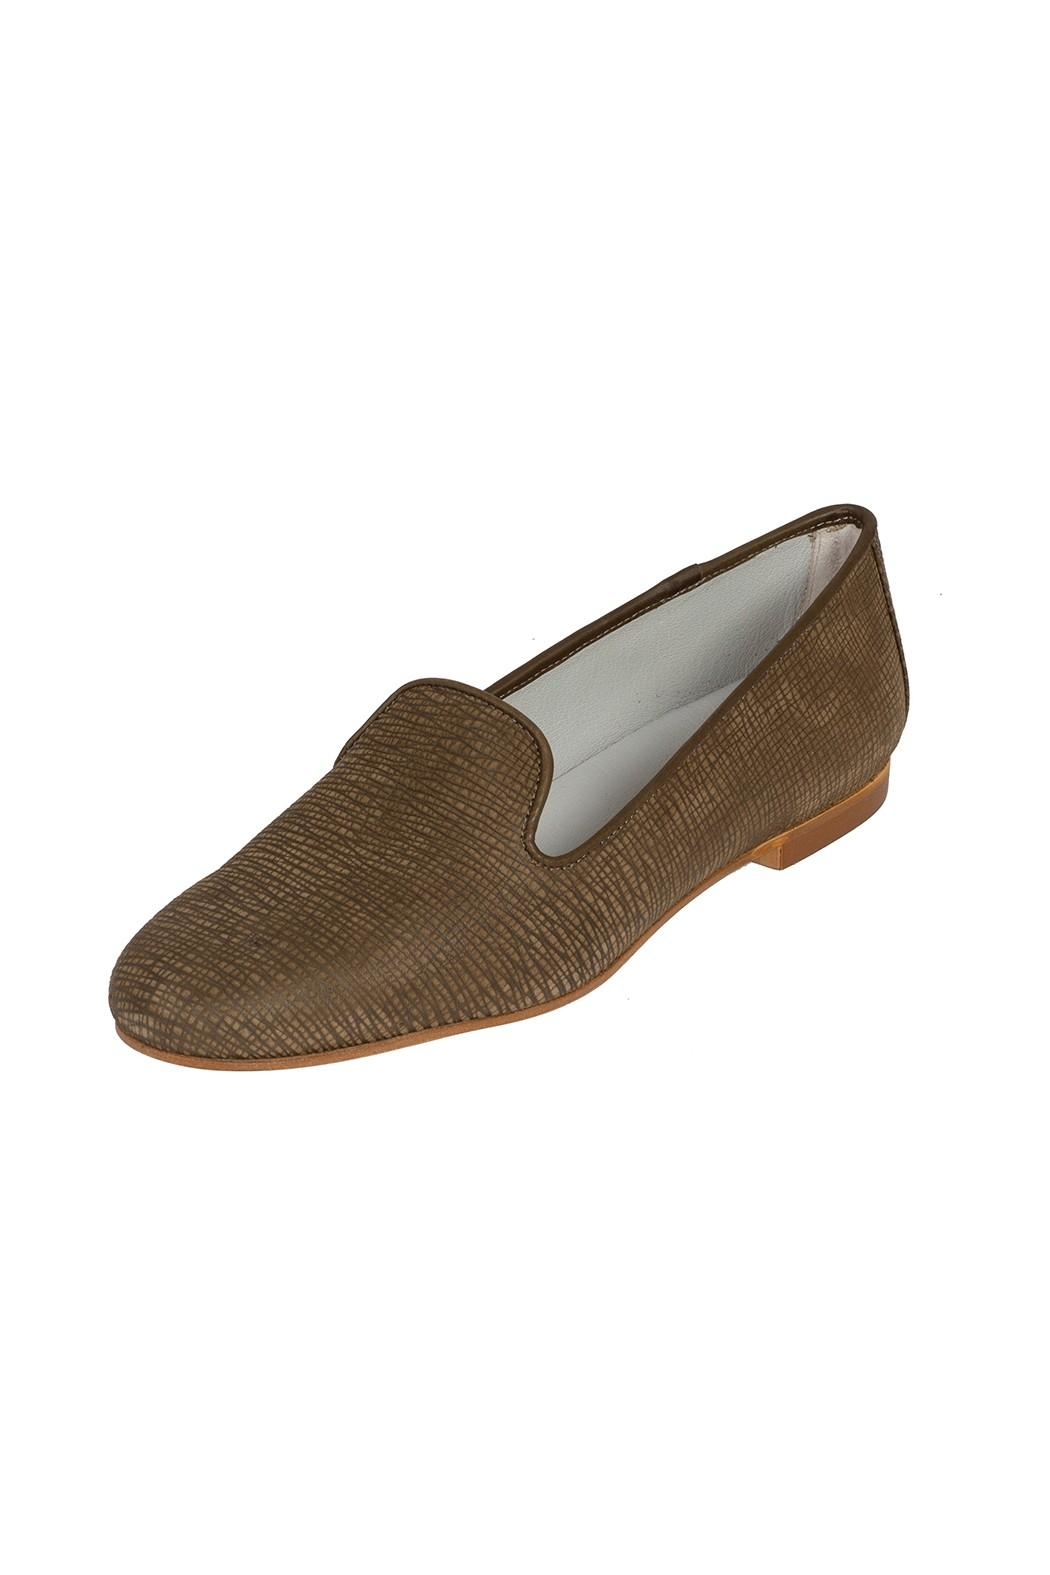 Pascucci Leather Olive-Green Smoking-Slipper - Front Full Image